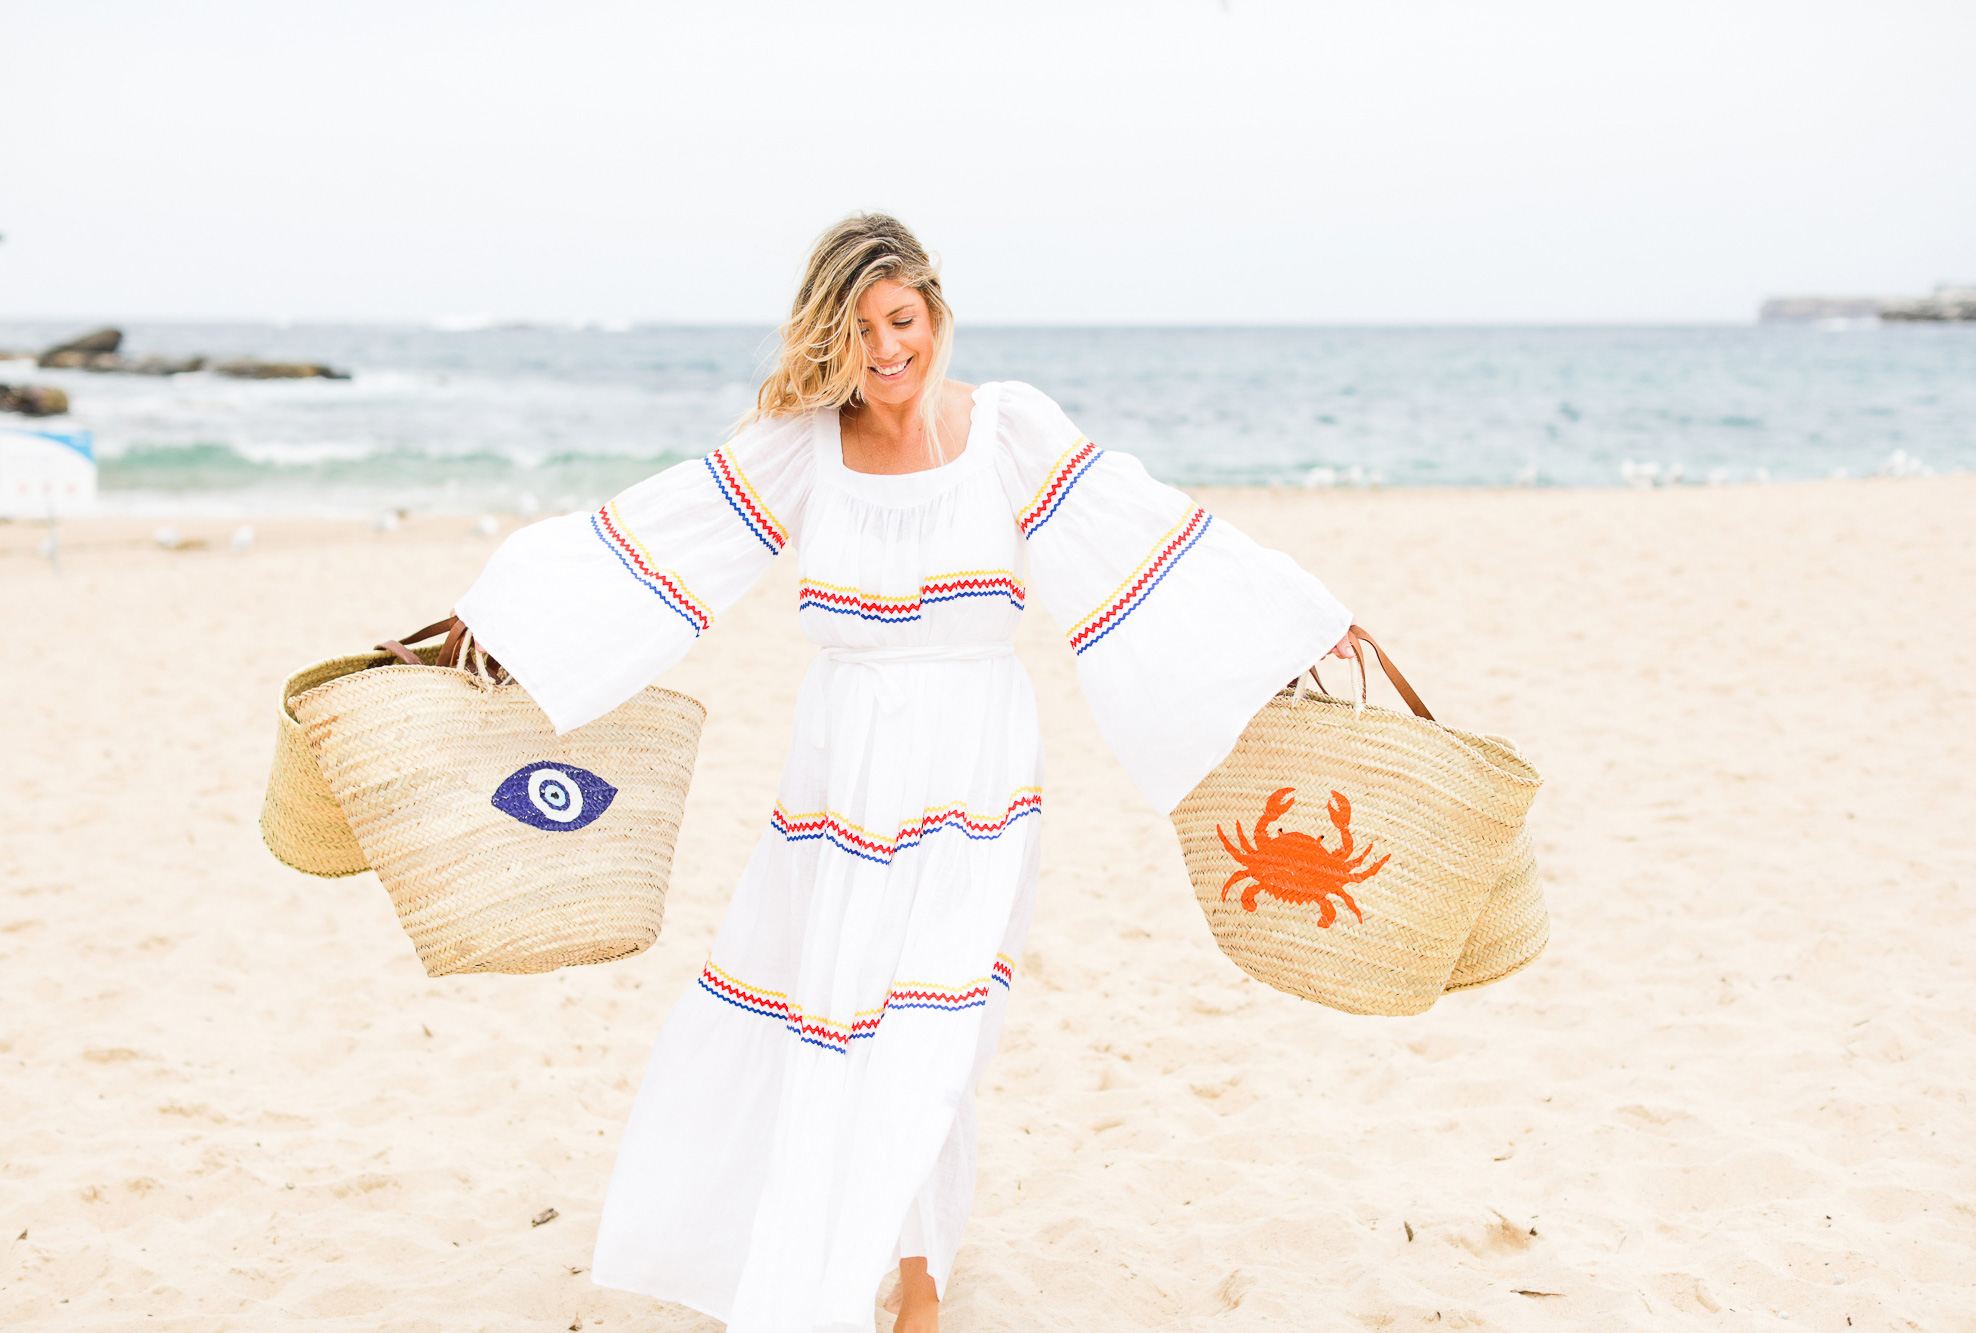 Meet the former Voguette behind the basket bags we're coveting this summer